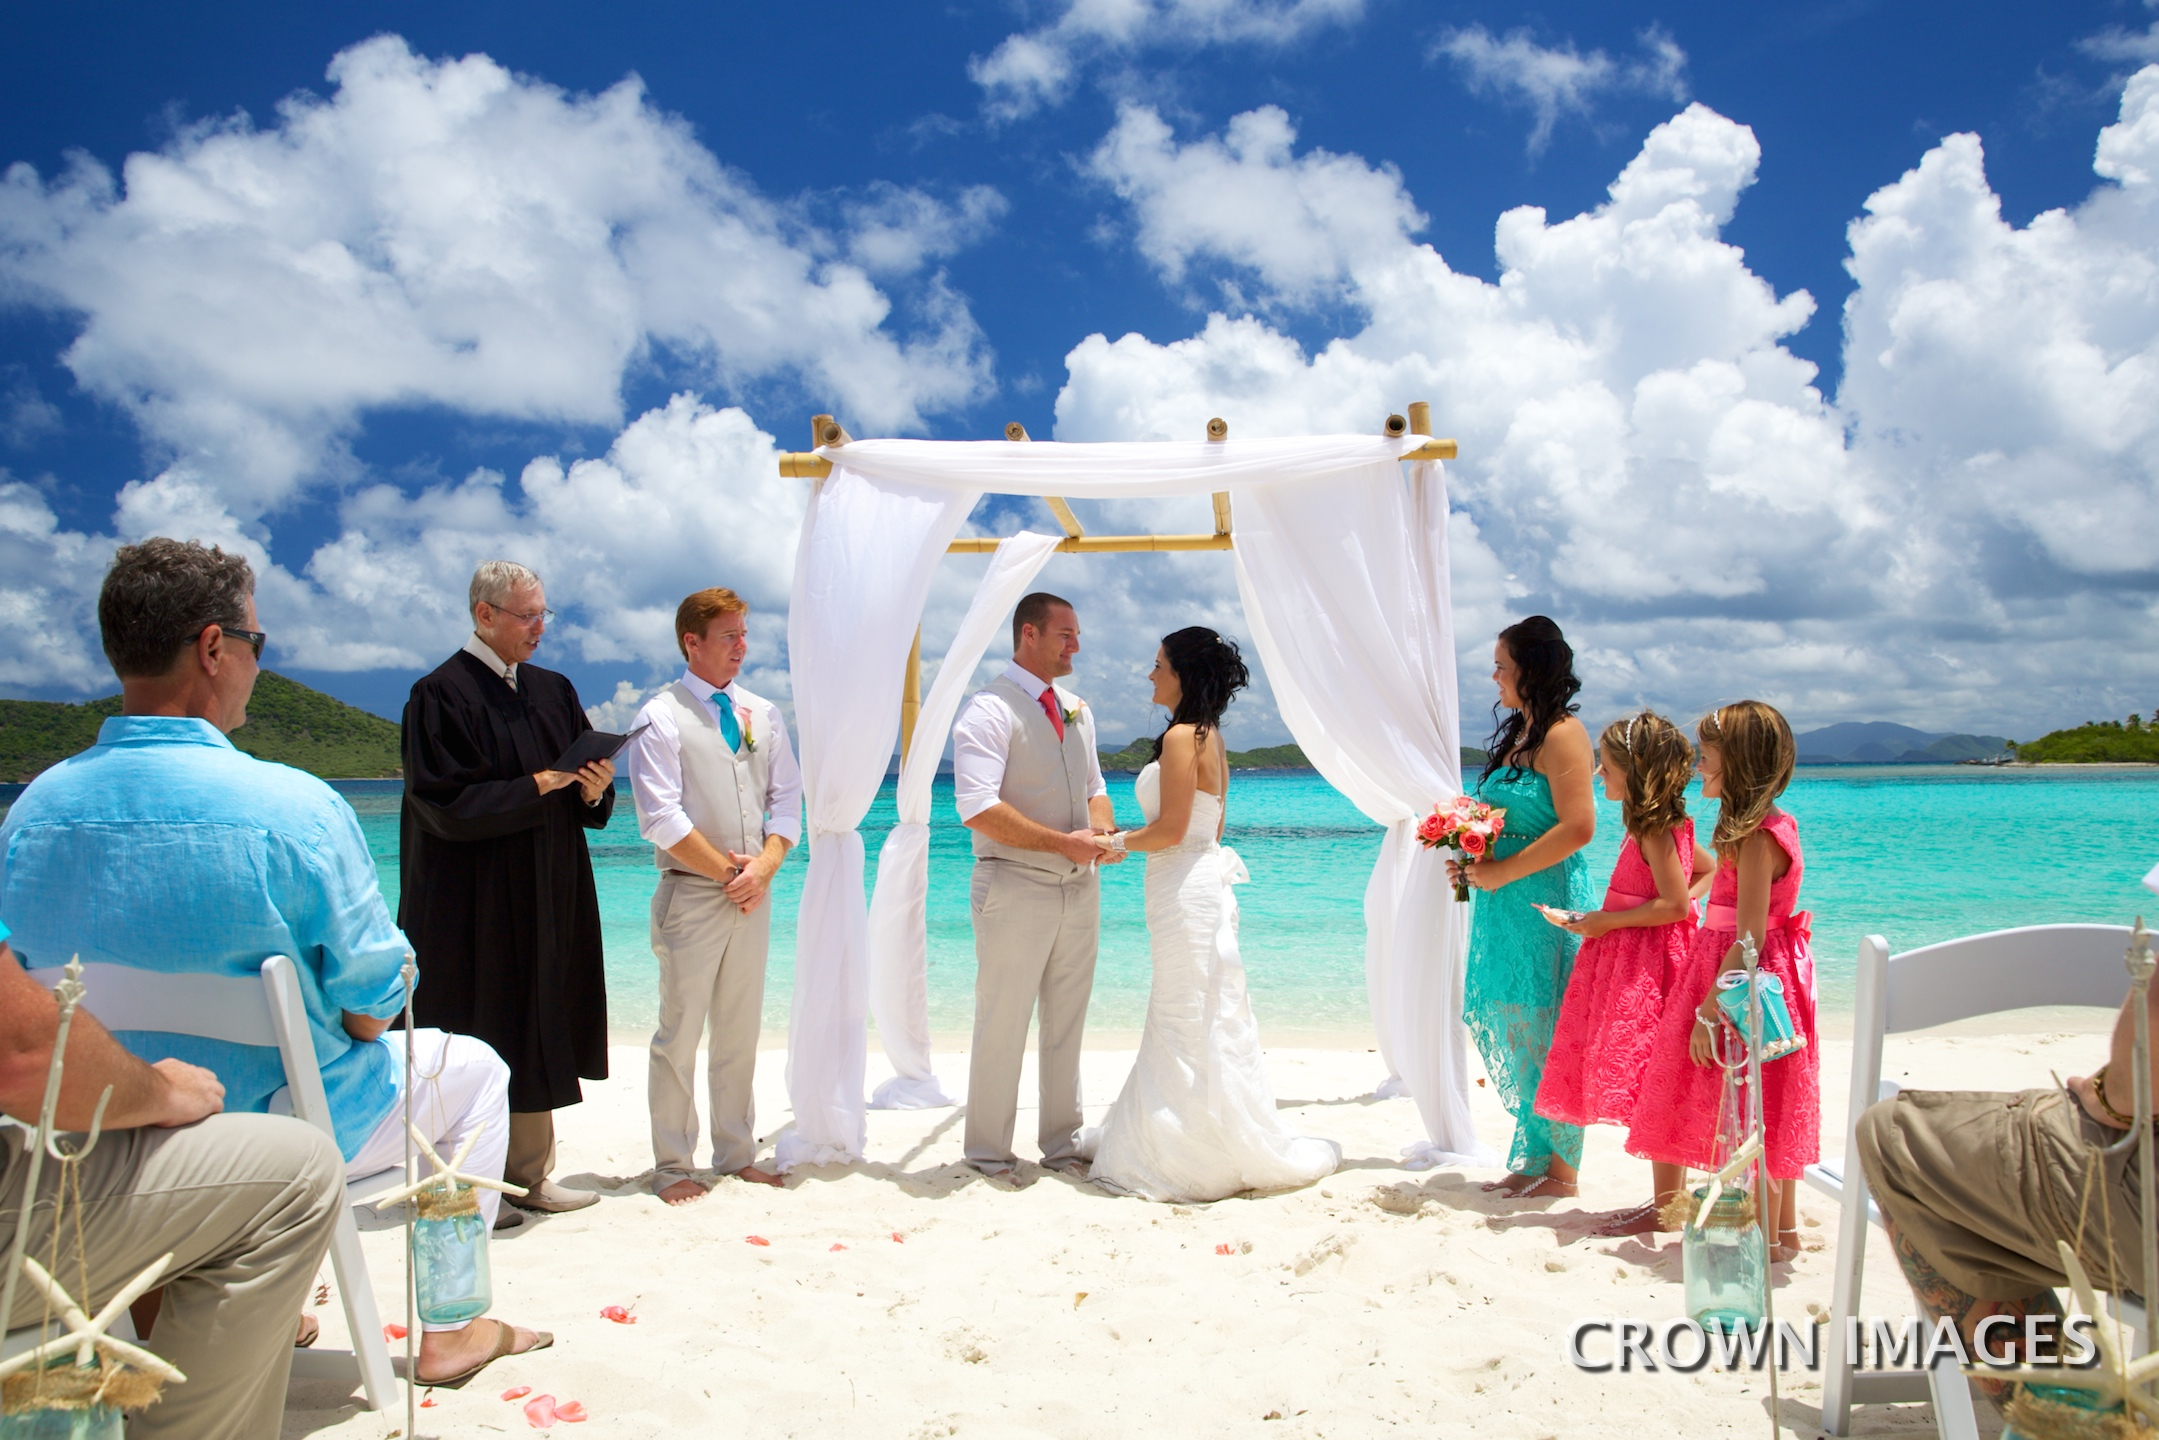 st thomas wedding ceremony photo by crown images